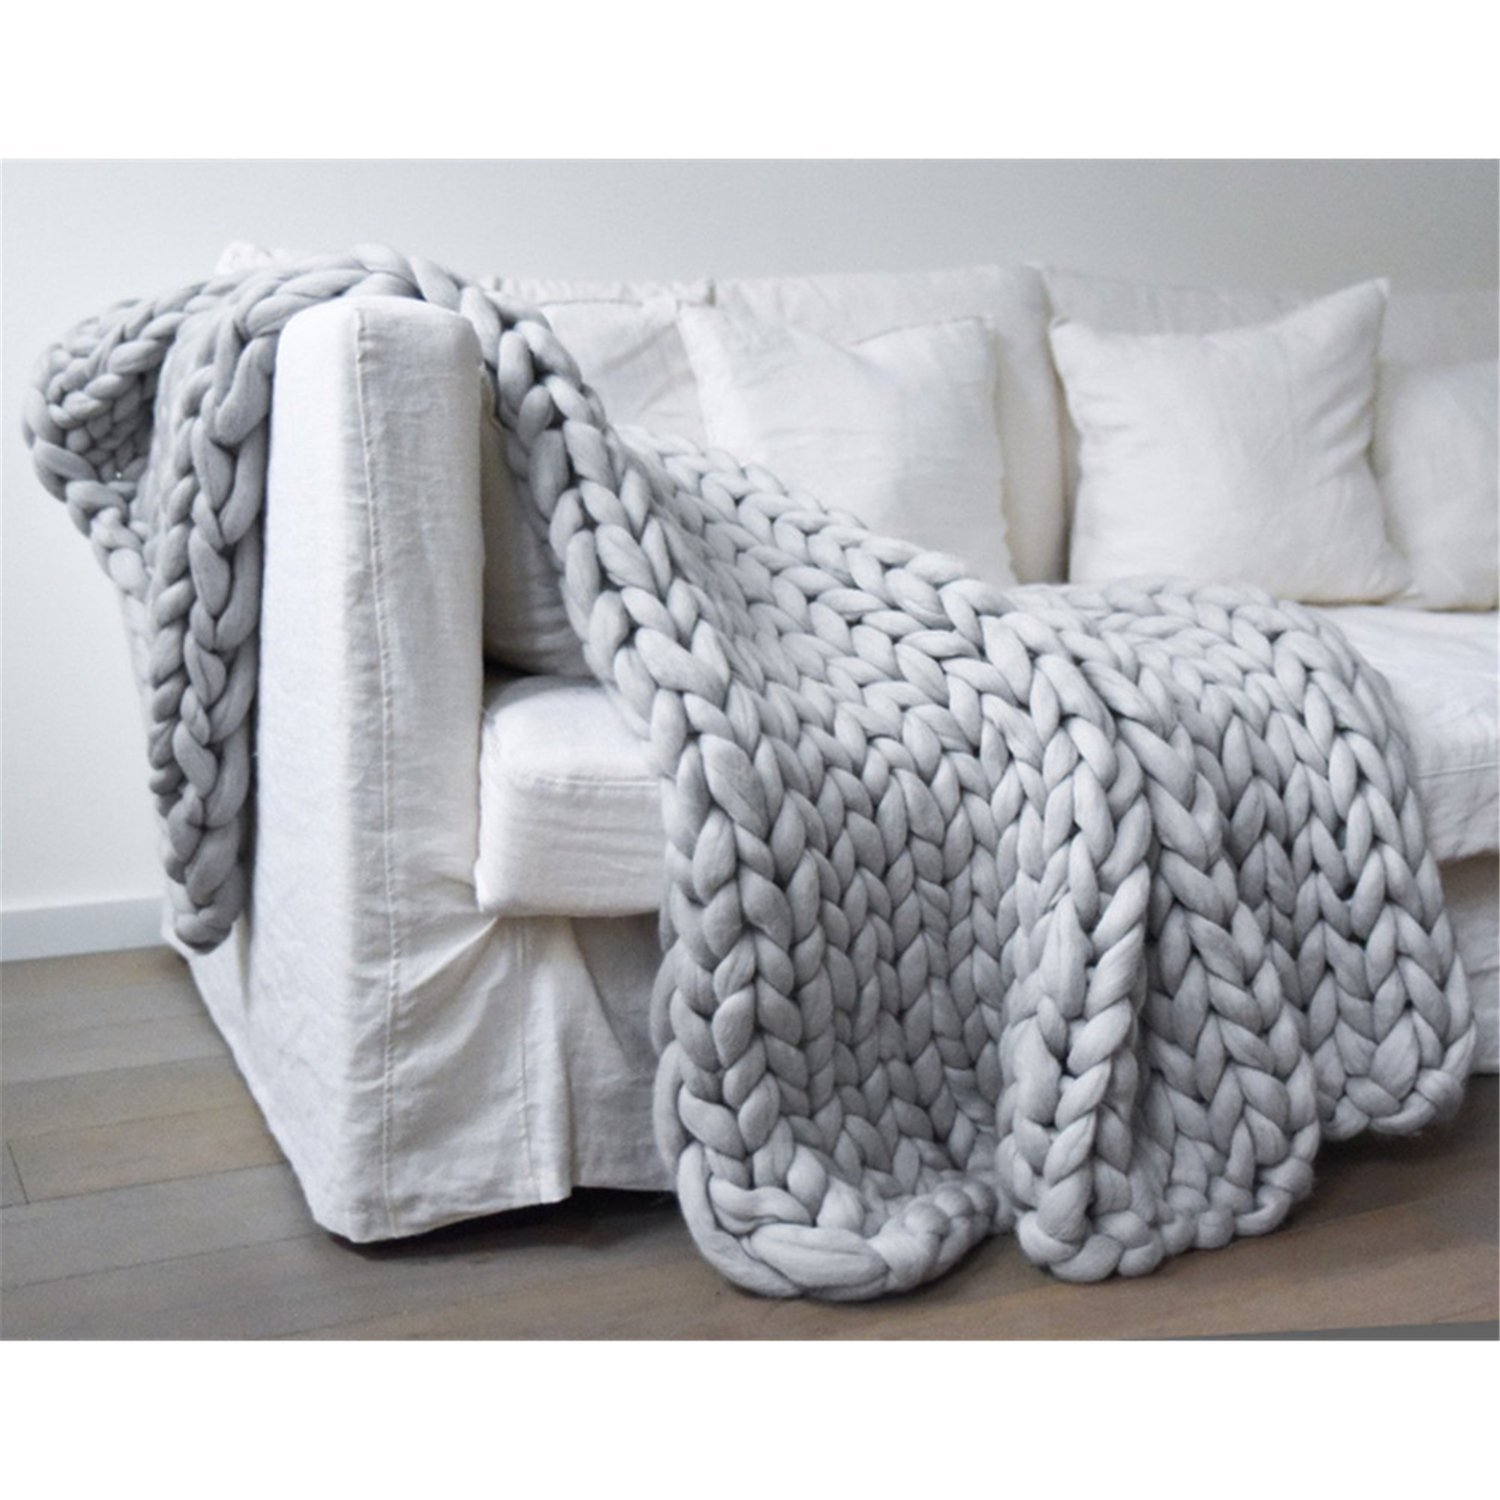 EASTSURE Knit Acrylic Blanket Hand-made Chunky Bed Sofa Throw Super Large,Grey,47''x71'' by EASTSURE (Image #3)